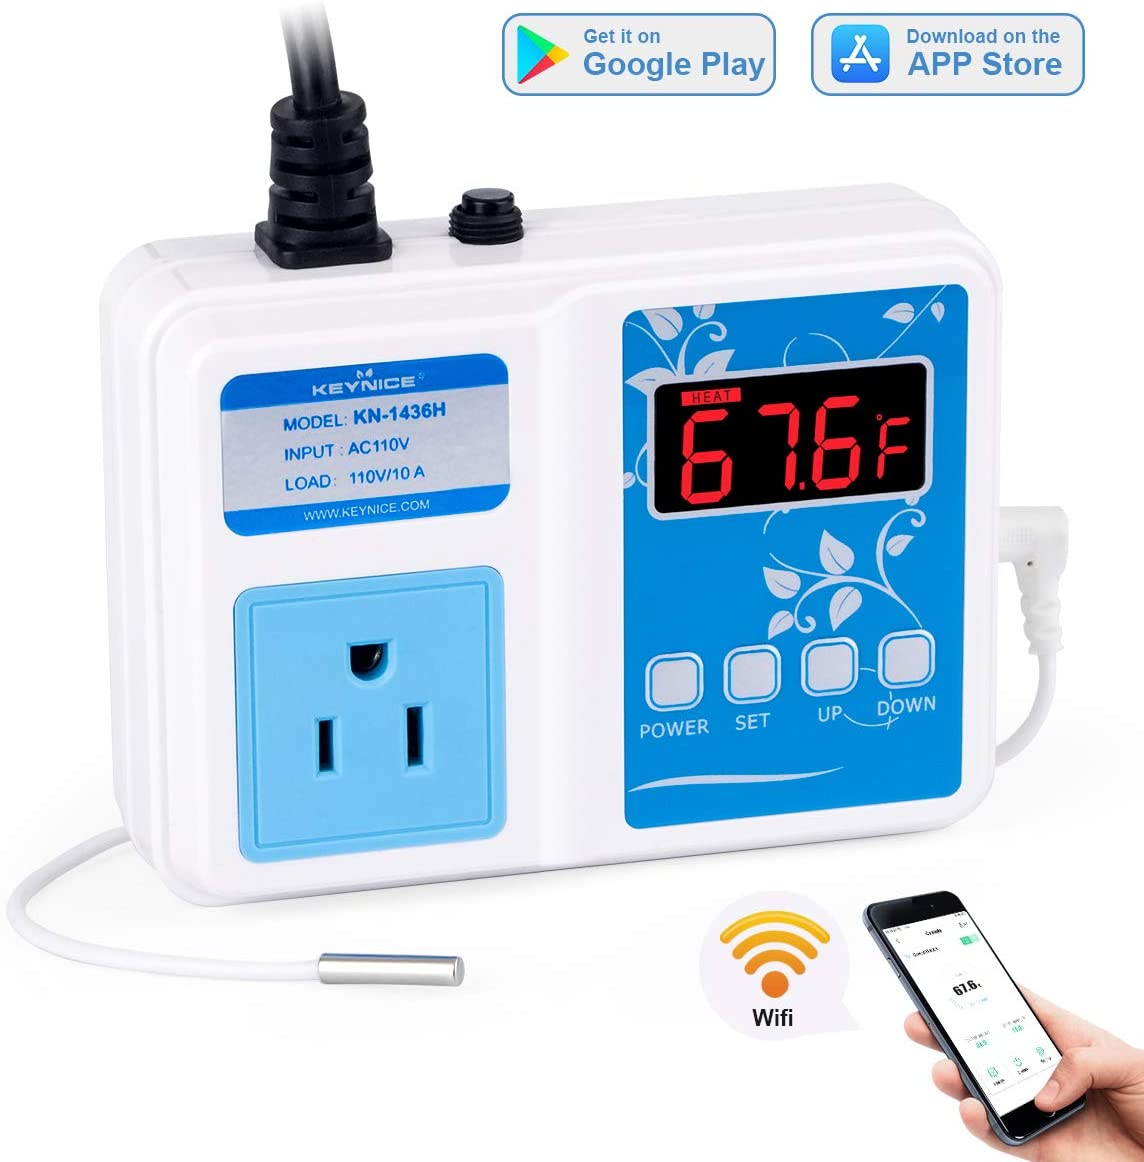 KEYNICE Wi-Fi Temperature Controller, Wireless Digital Outlet Thermostat, Heating and Cooling Mode, 110V Temp Controller with Waterproof Probe for Brewing Fermentation, Seed Germination, Aquarium